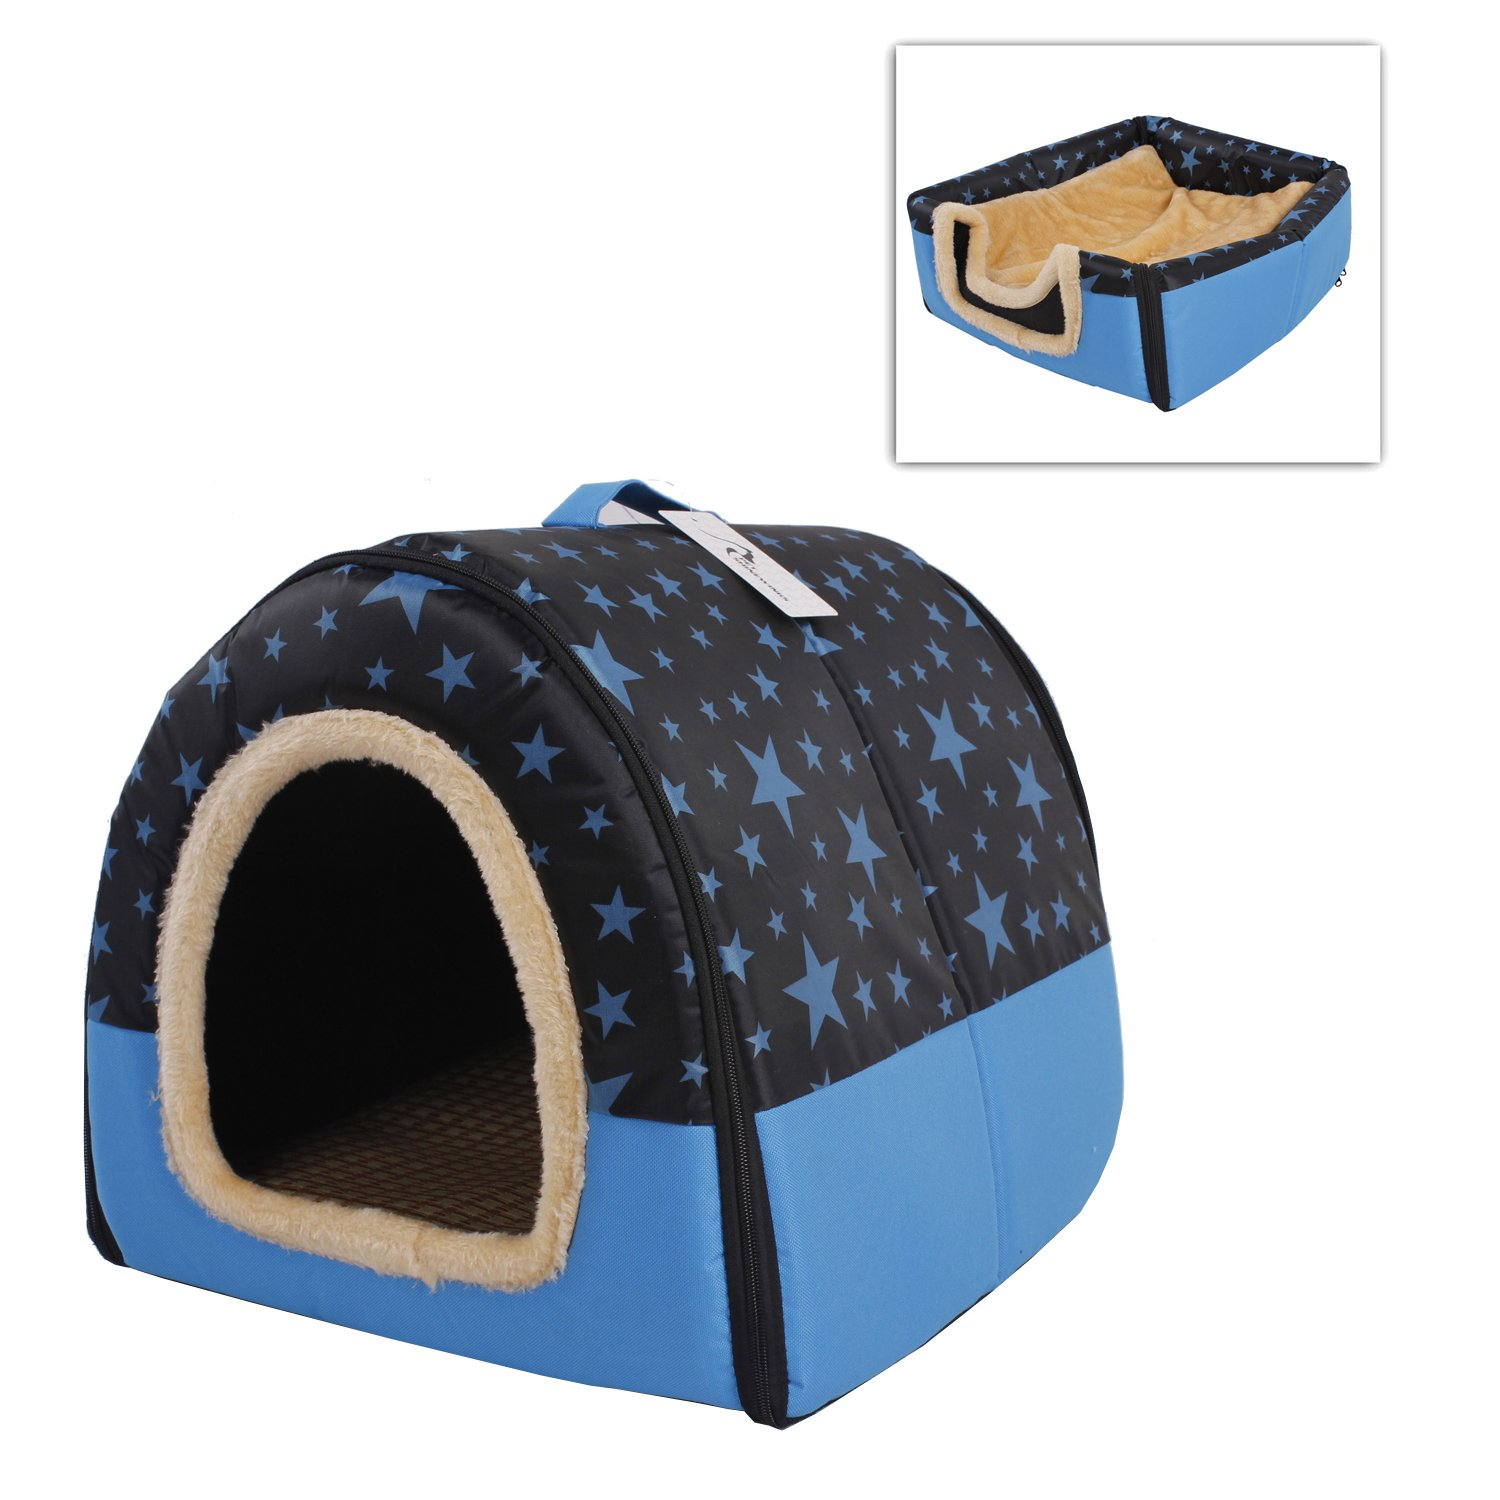 PET SHINEWINGS Collapsible Portable Soft Sided Plush Pet Dog Cat House Kennel Size L